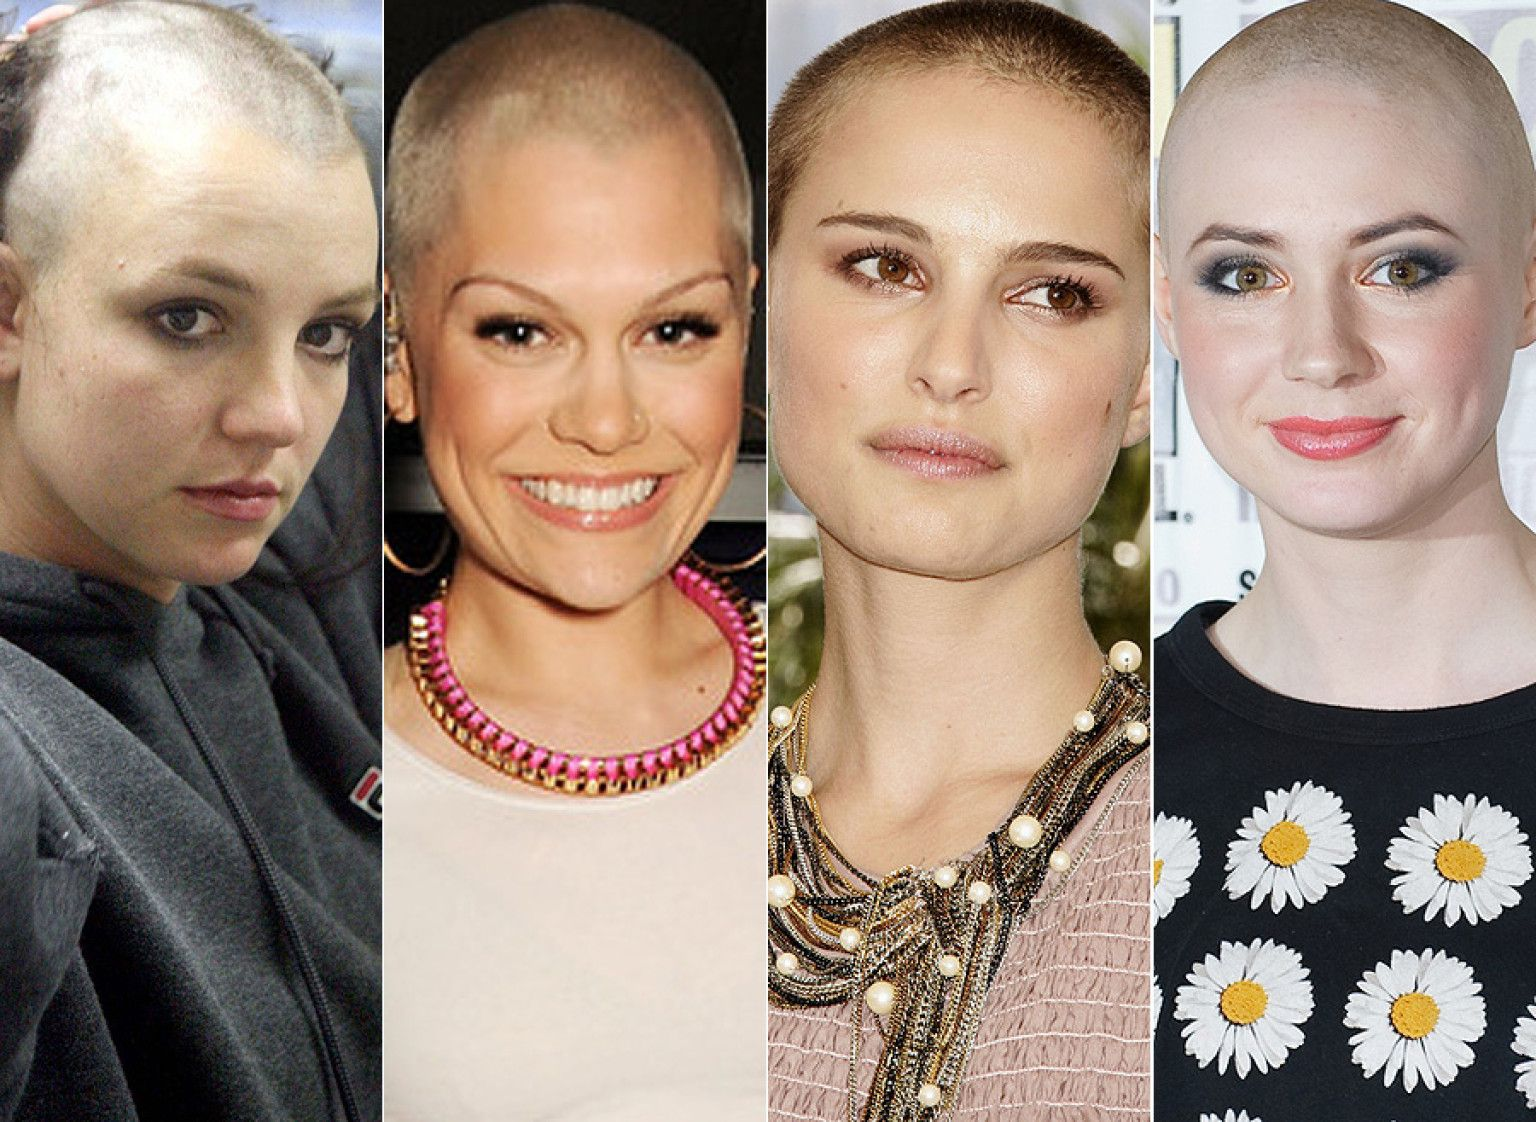 shaved their Head